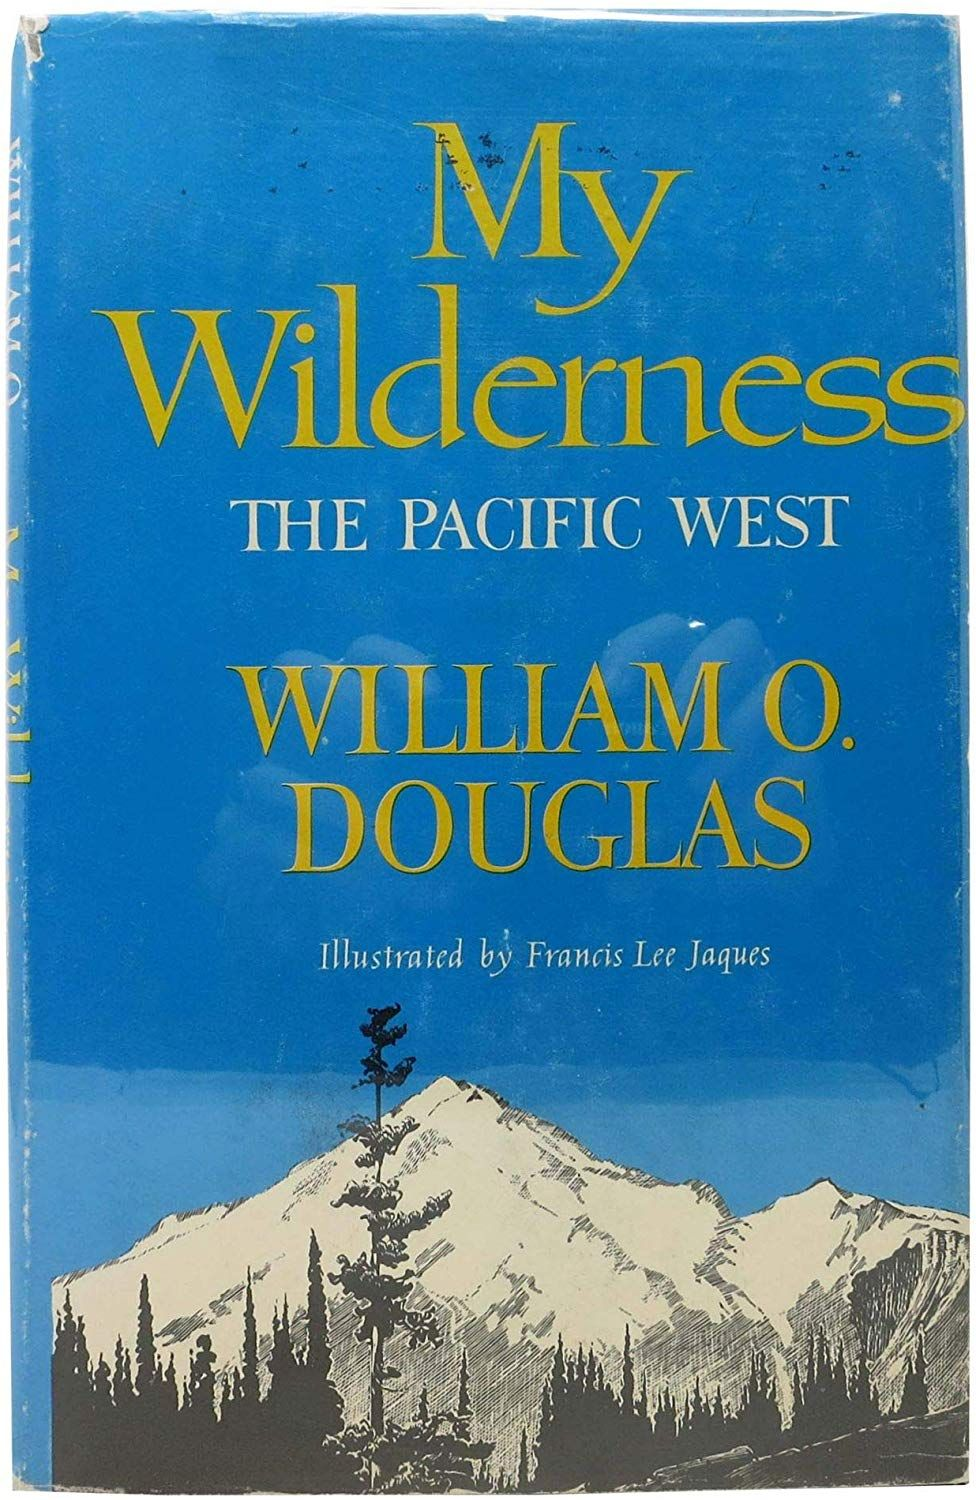 My Wilderness The Pacific West Amazon.co.uk William O